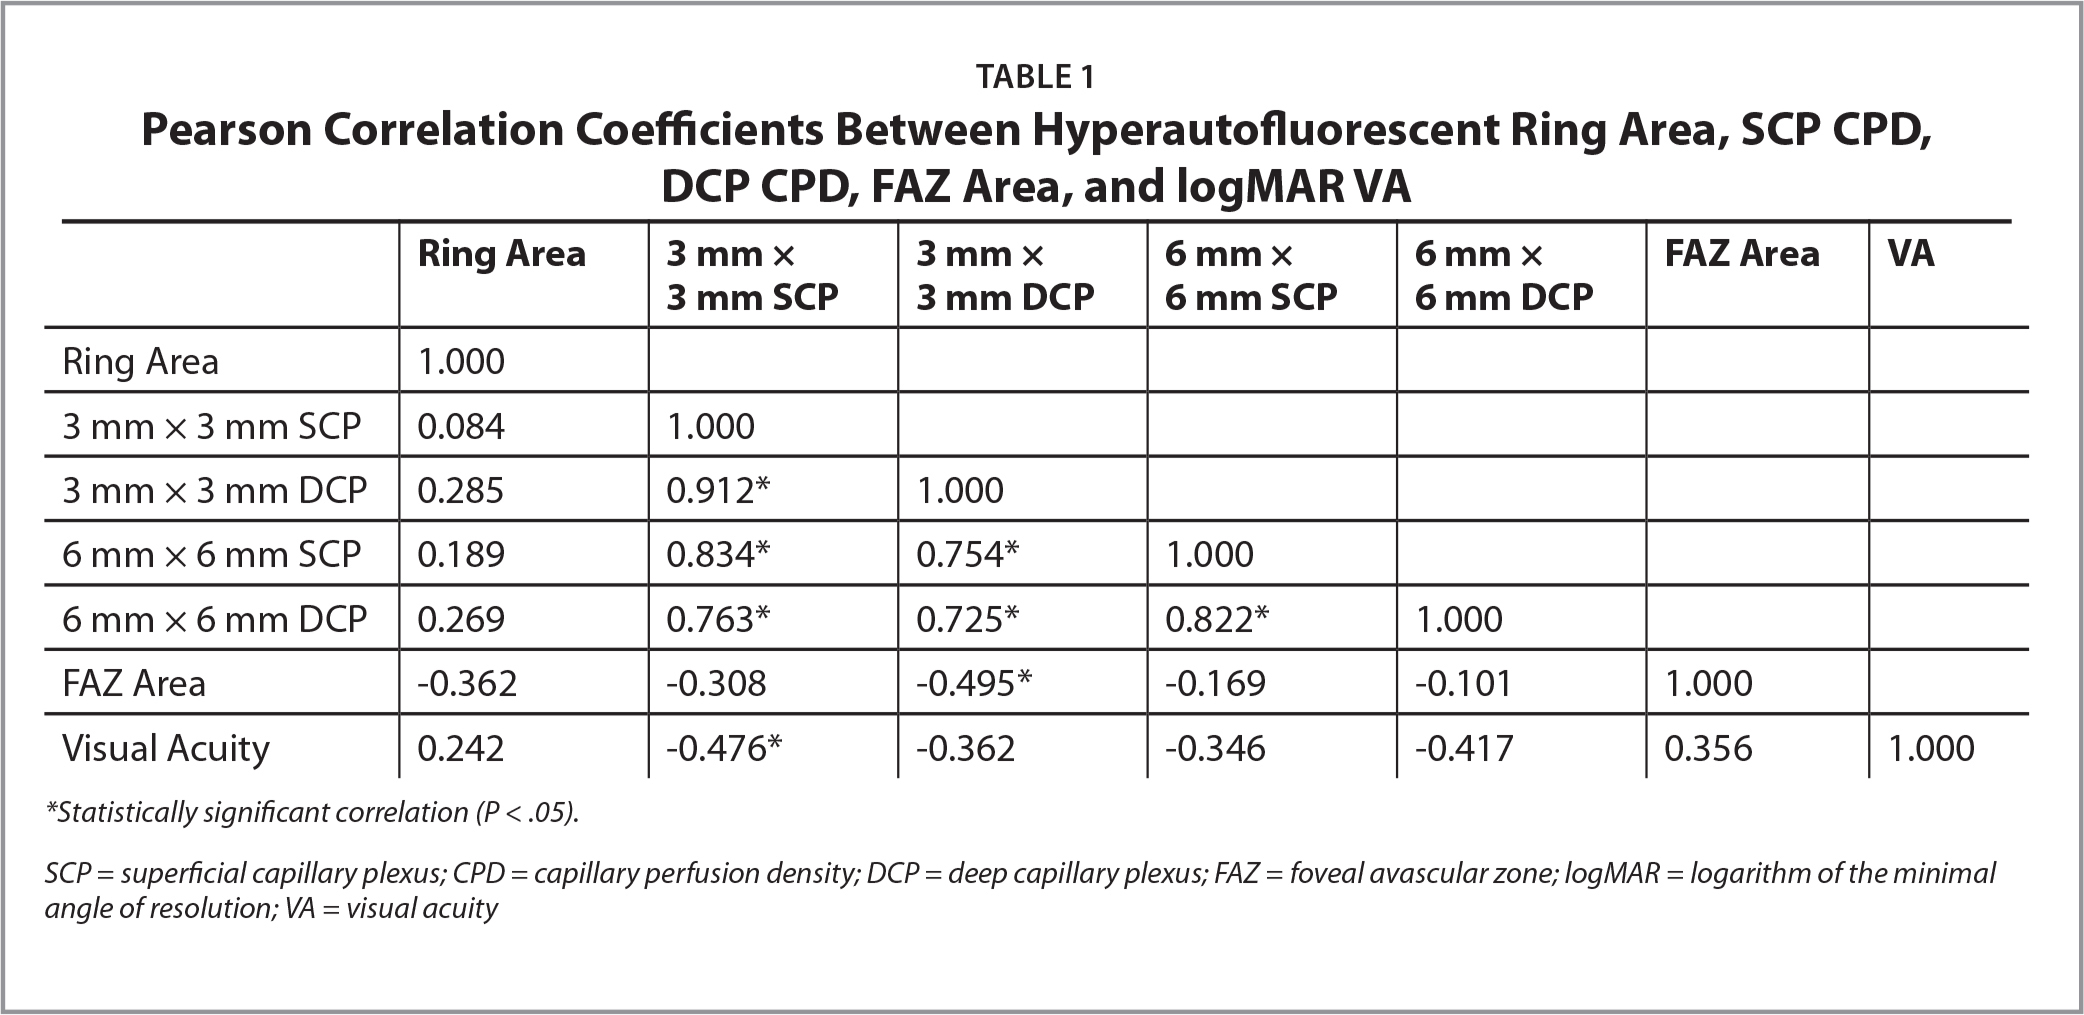 Pearson Correlation Coefficients Between Hyperautofluorescent Ring Area, SCP CPD, DCP CPD, FAZ Area, and logMAR VA